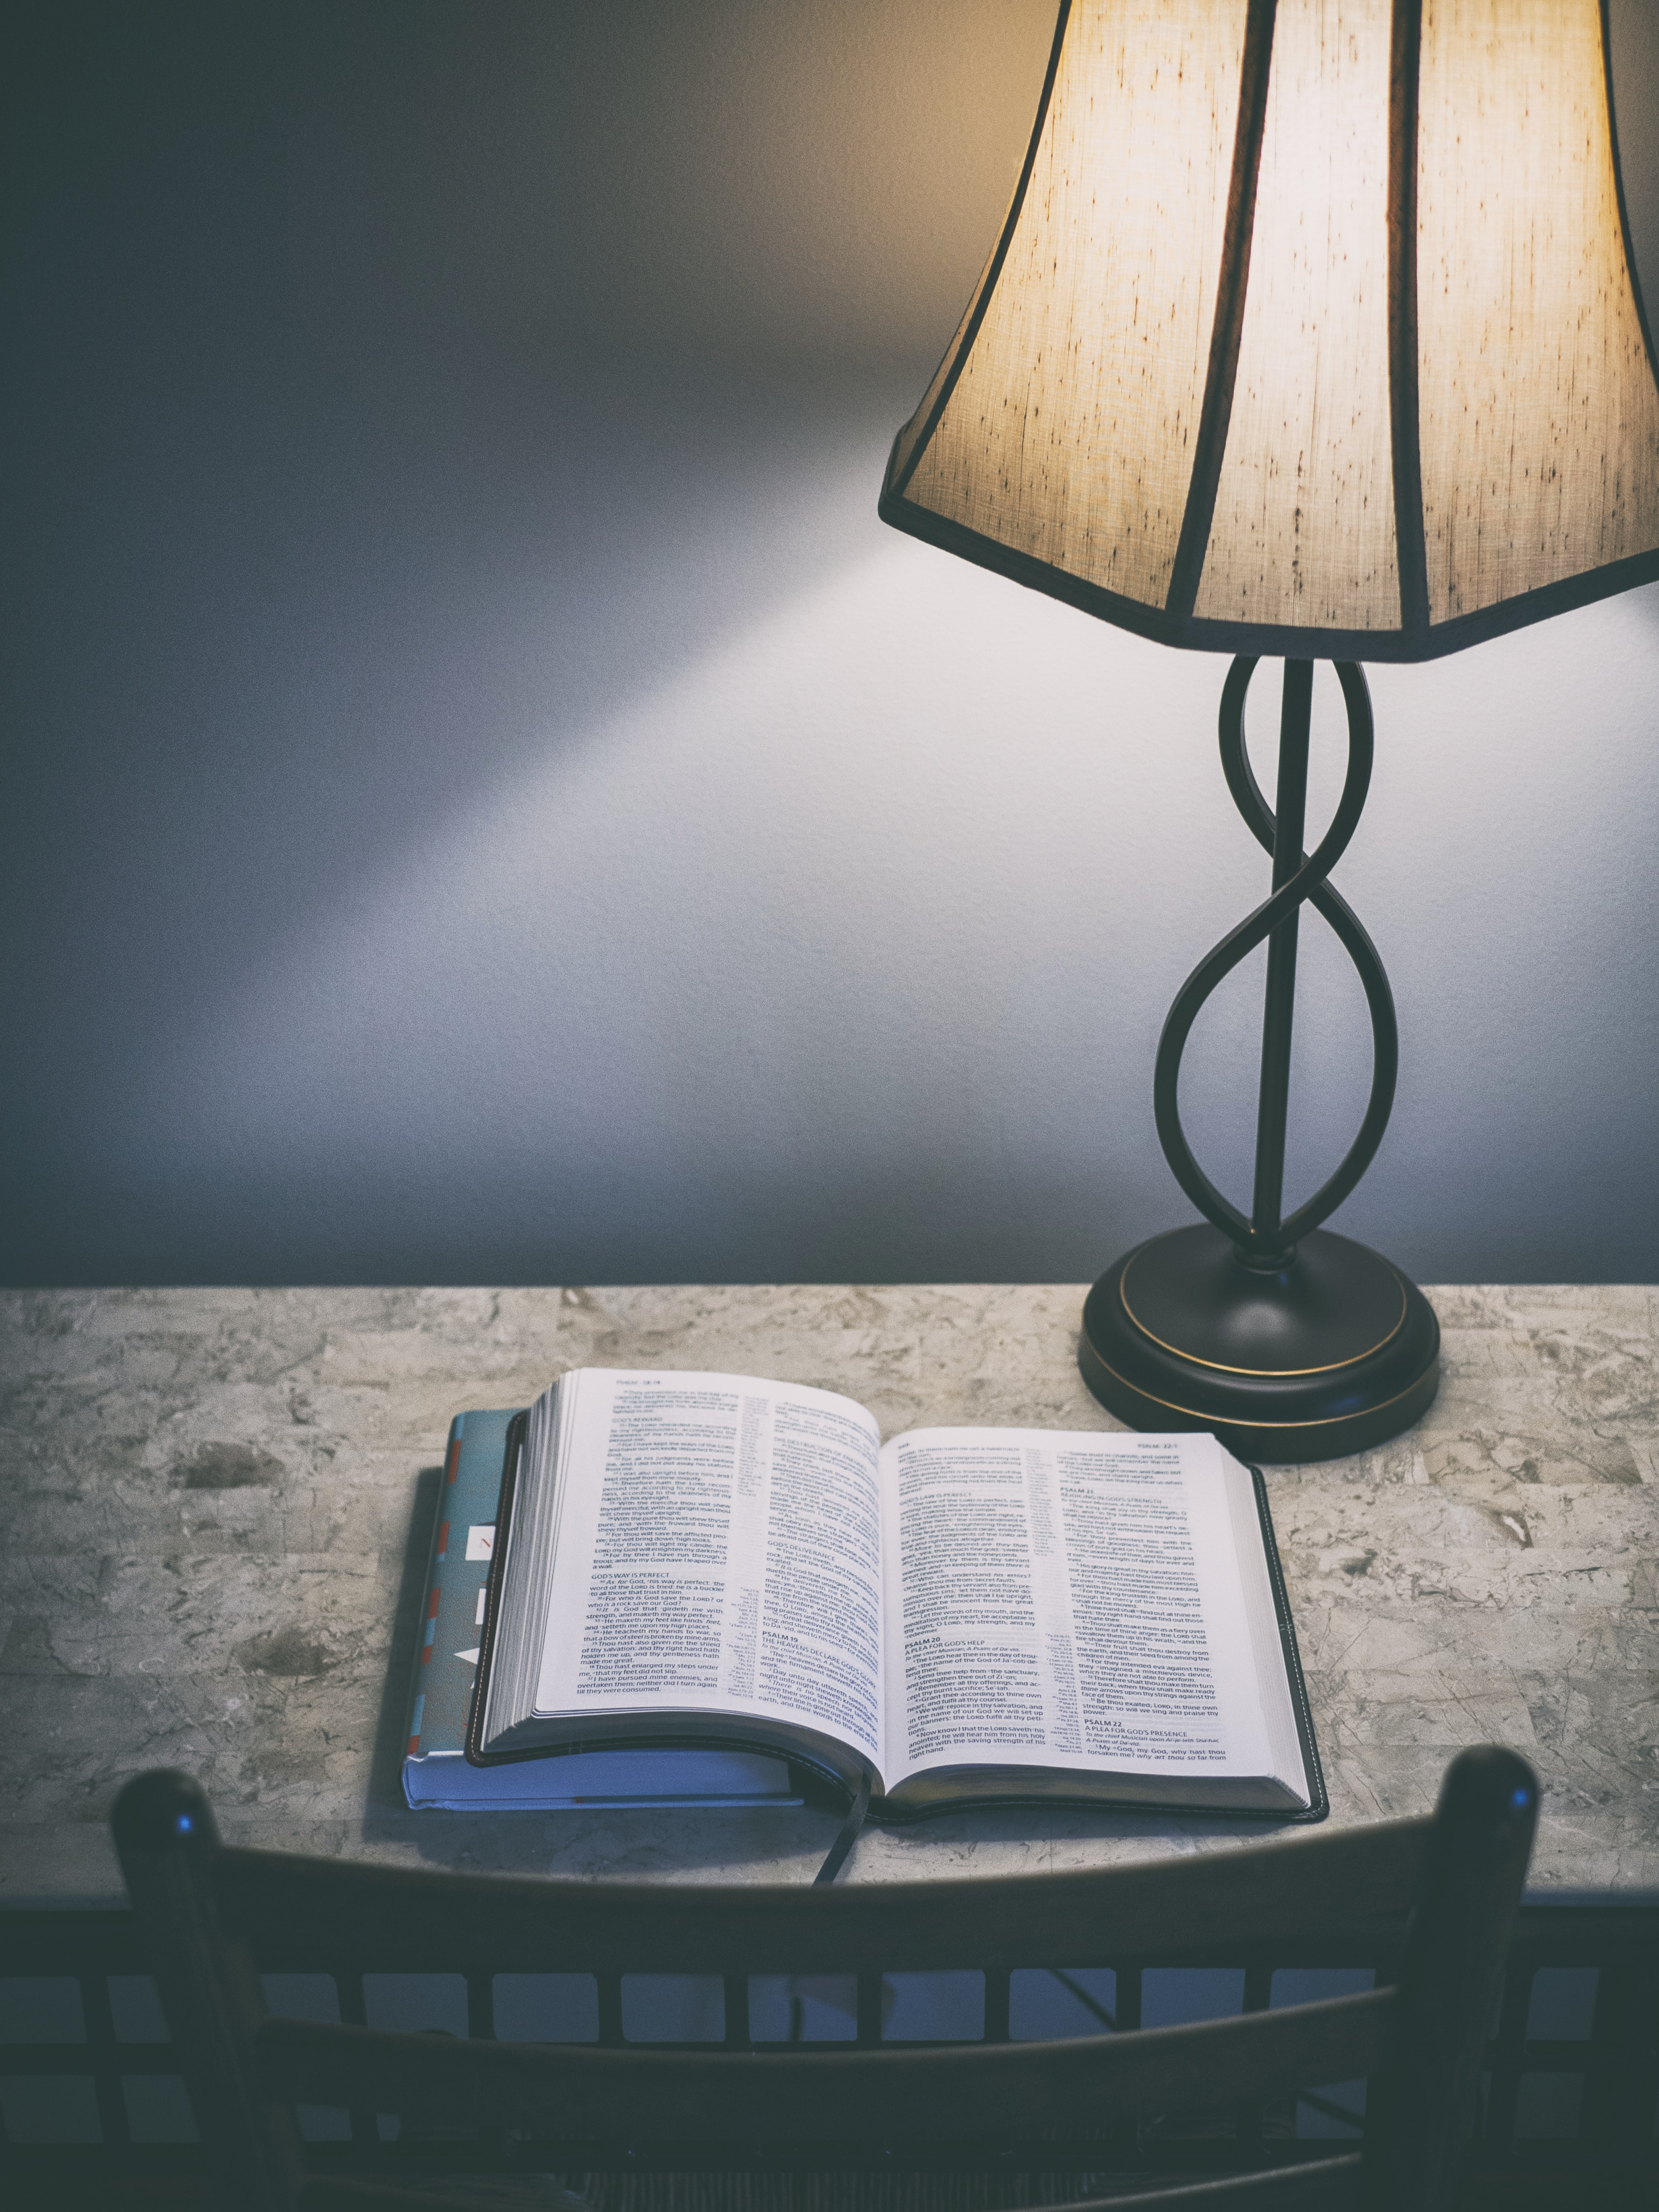 A book open on a table next to a lamp.